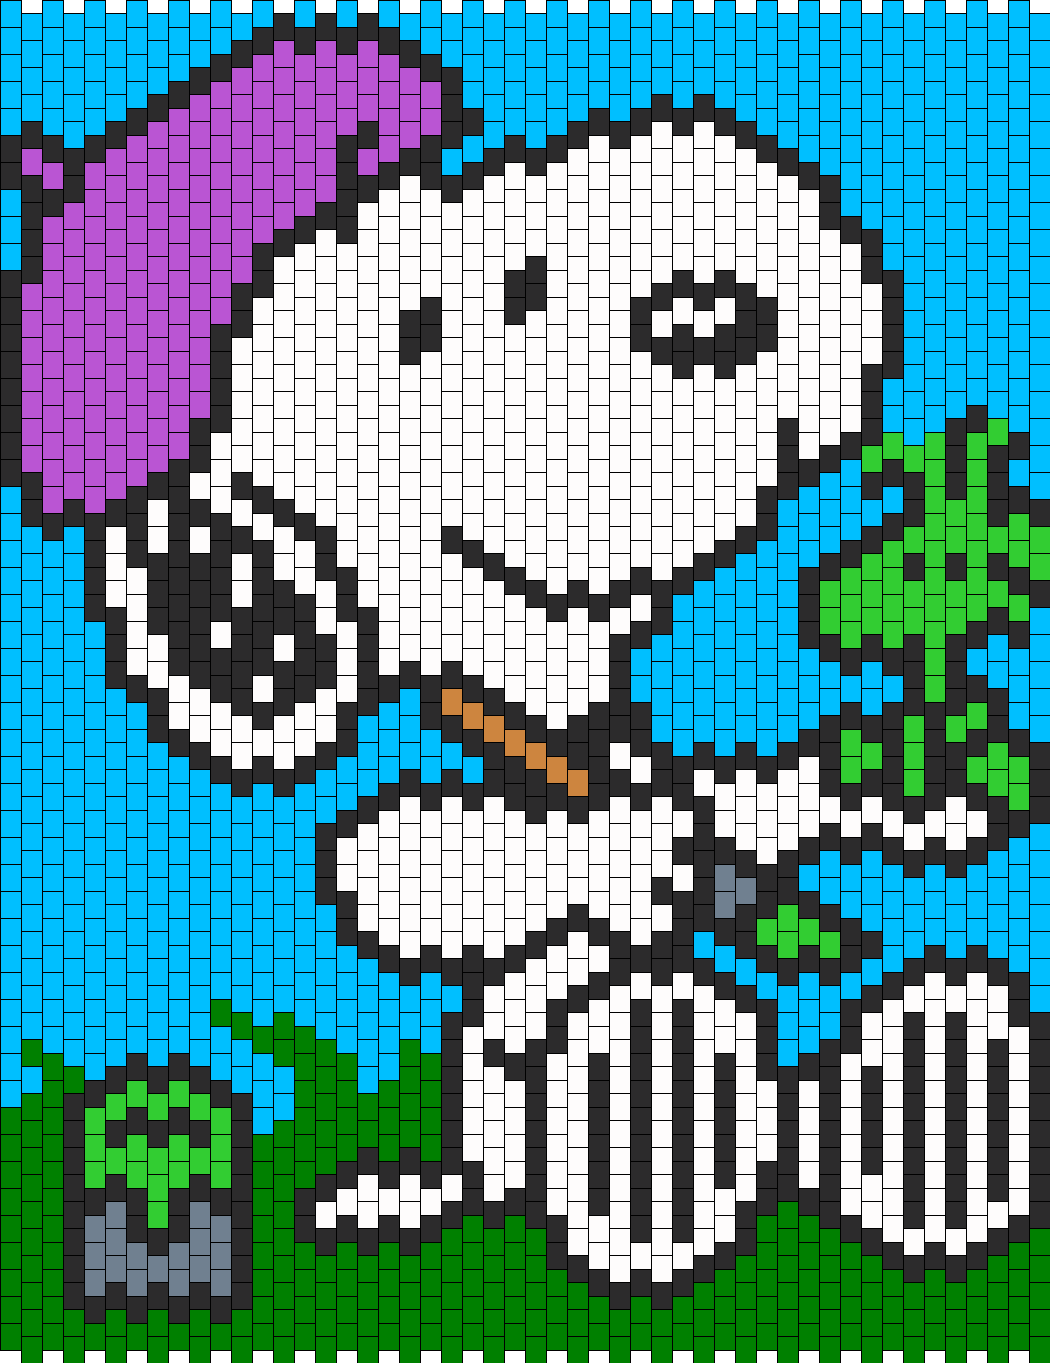 Snoopy Painting Woodstock